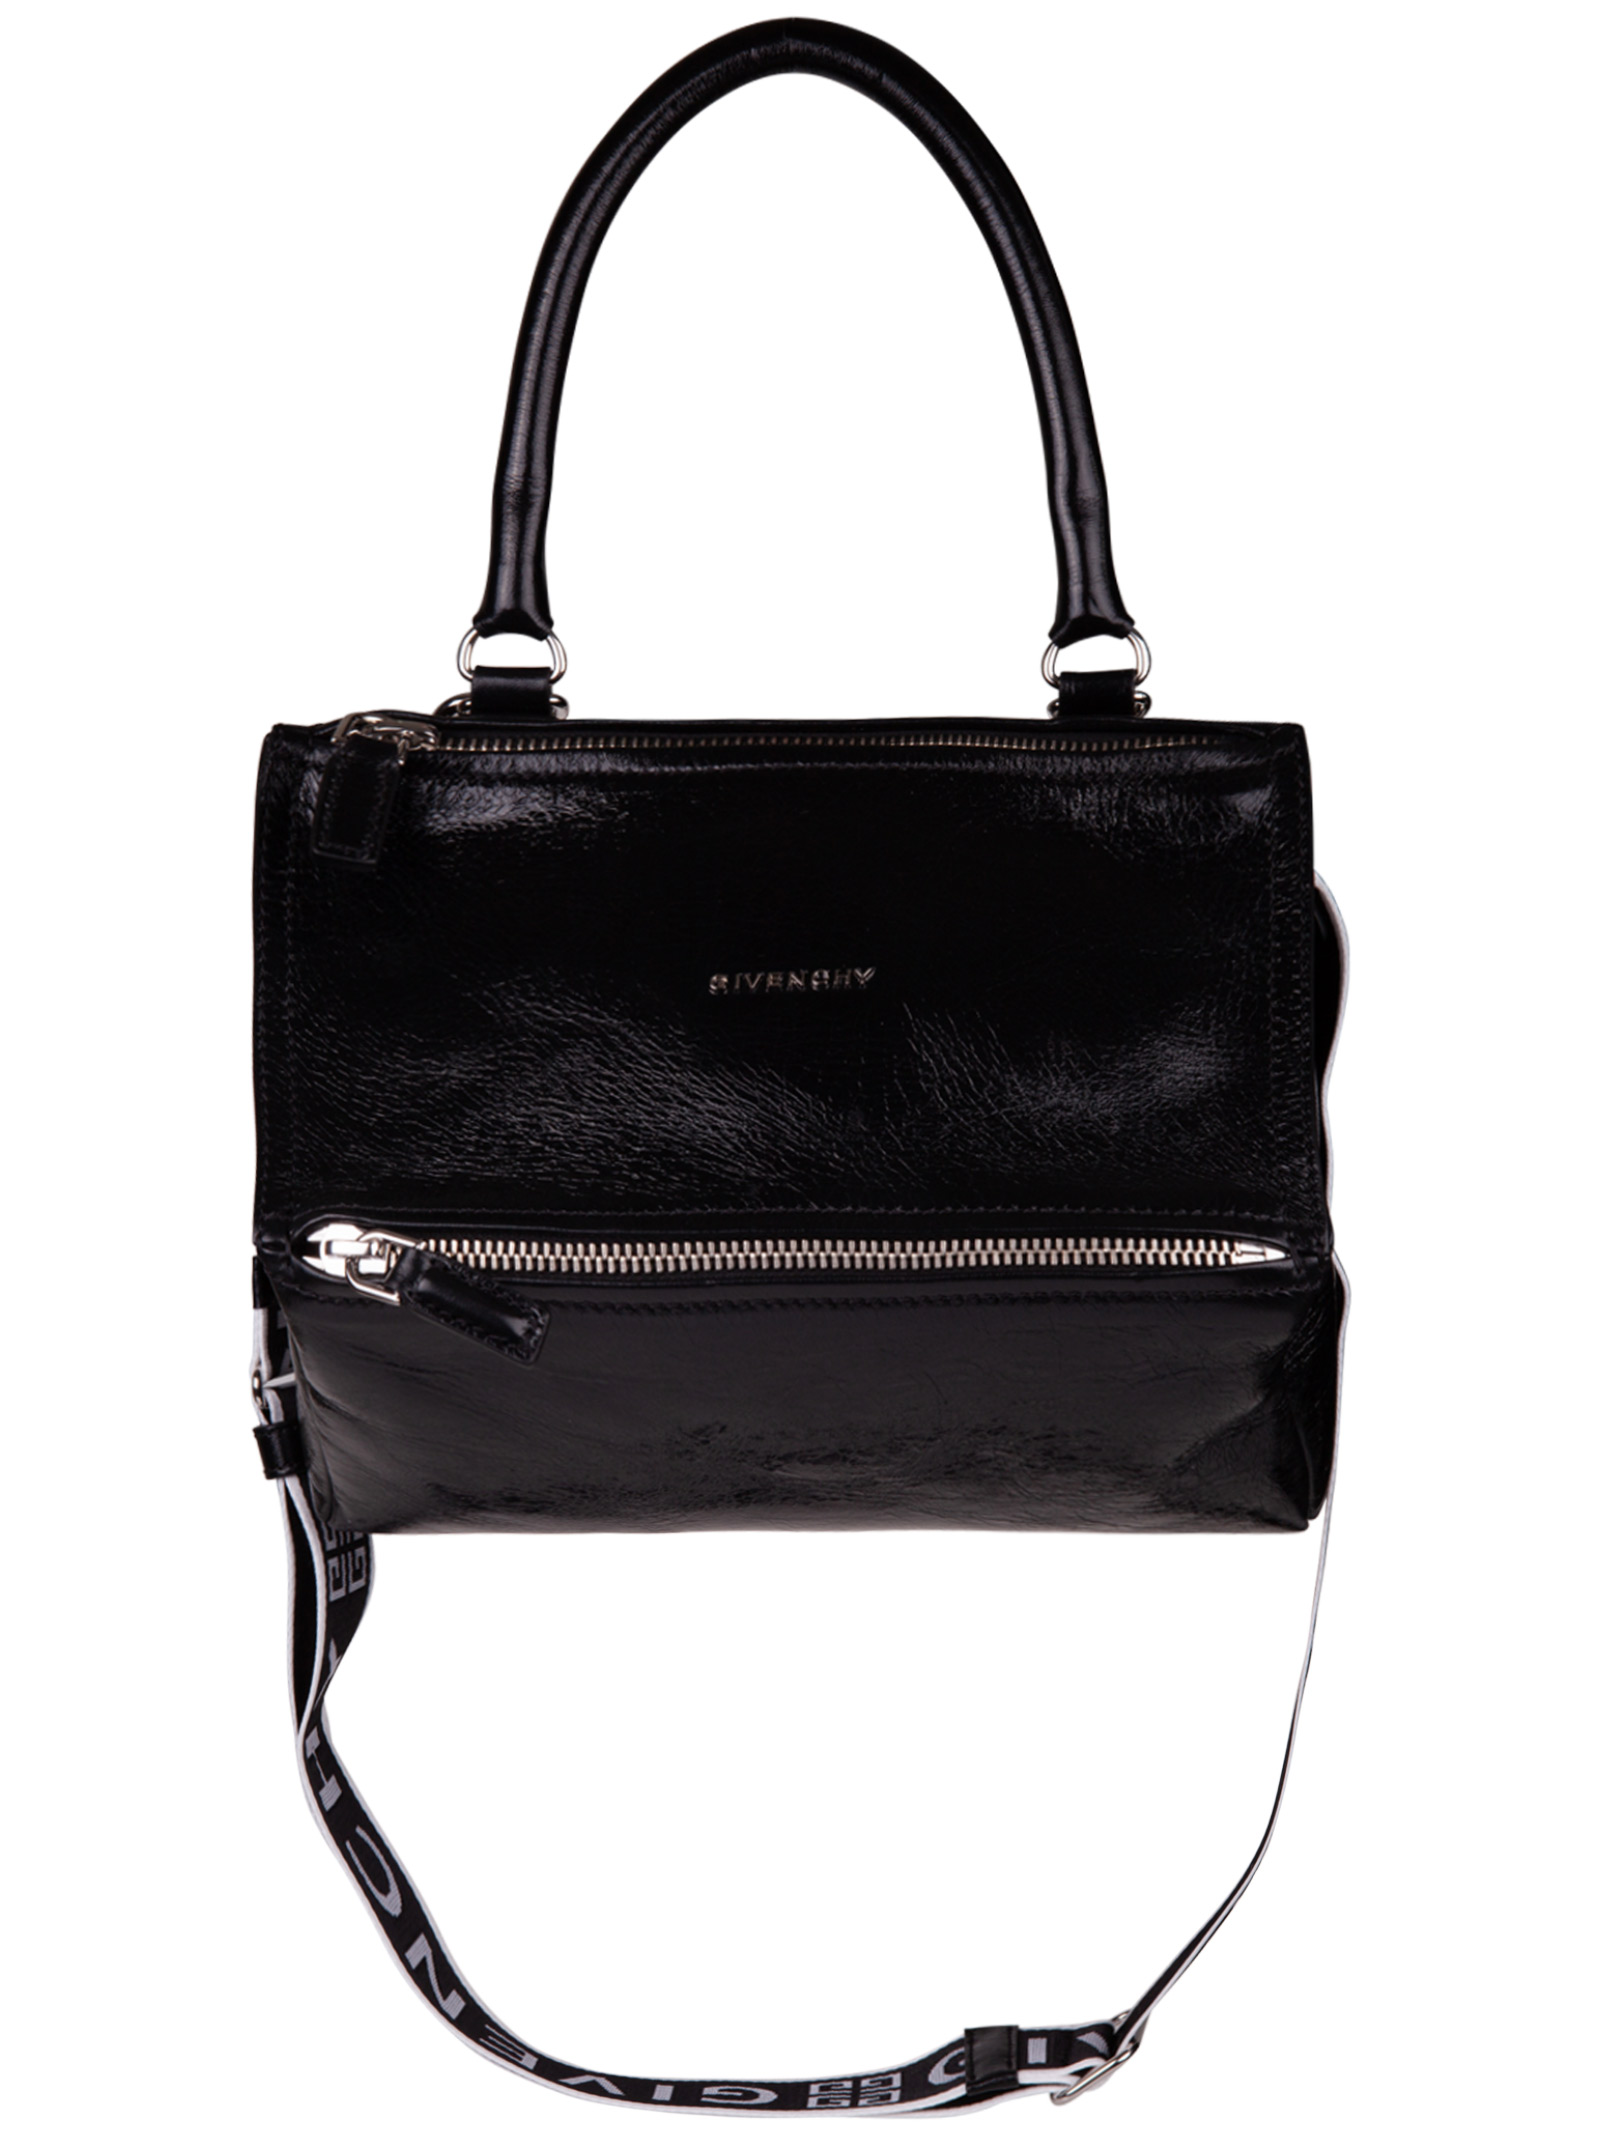 Givenchy tote bag - Givenchy - Michele Franzese Moda 0ec16aa6df622